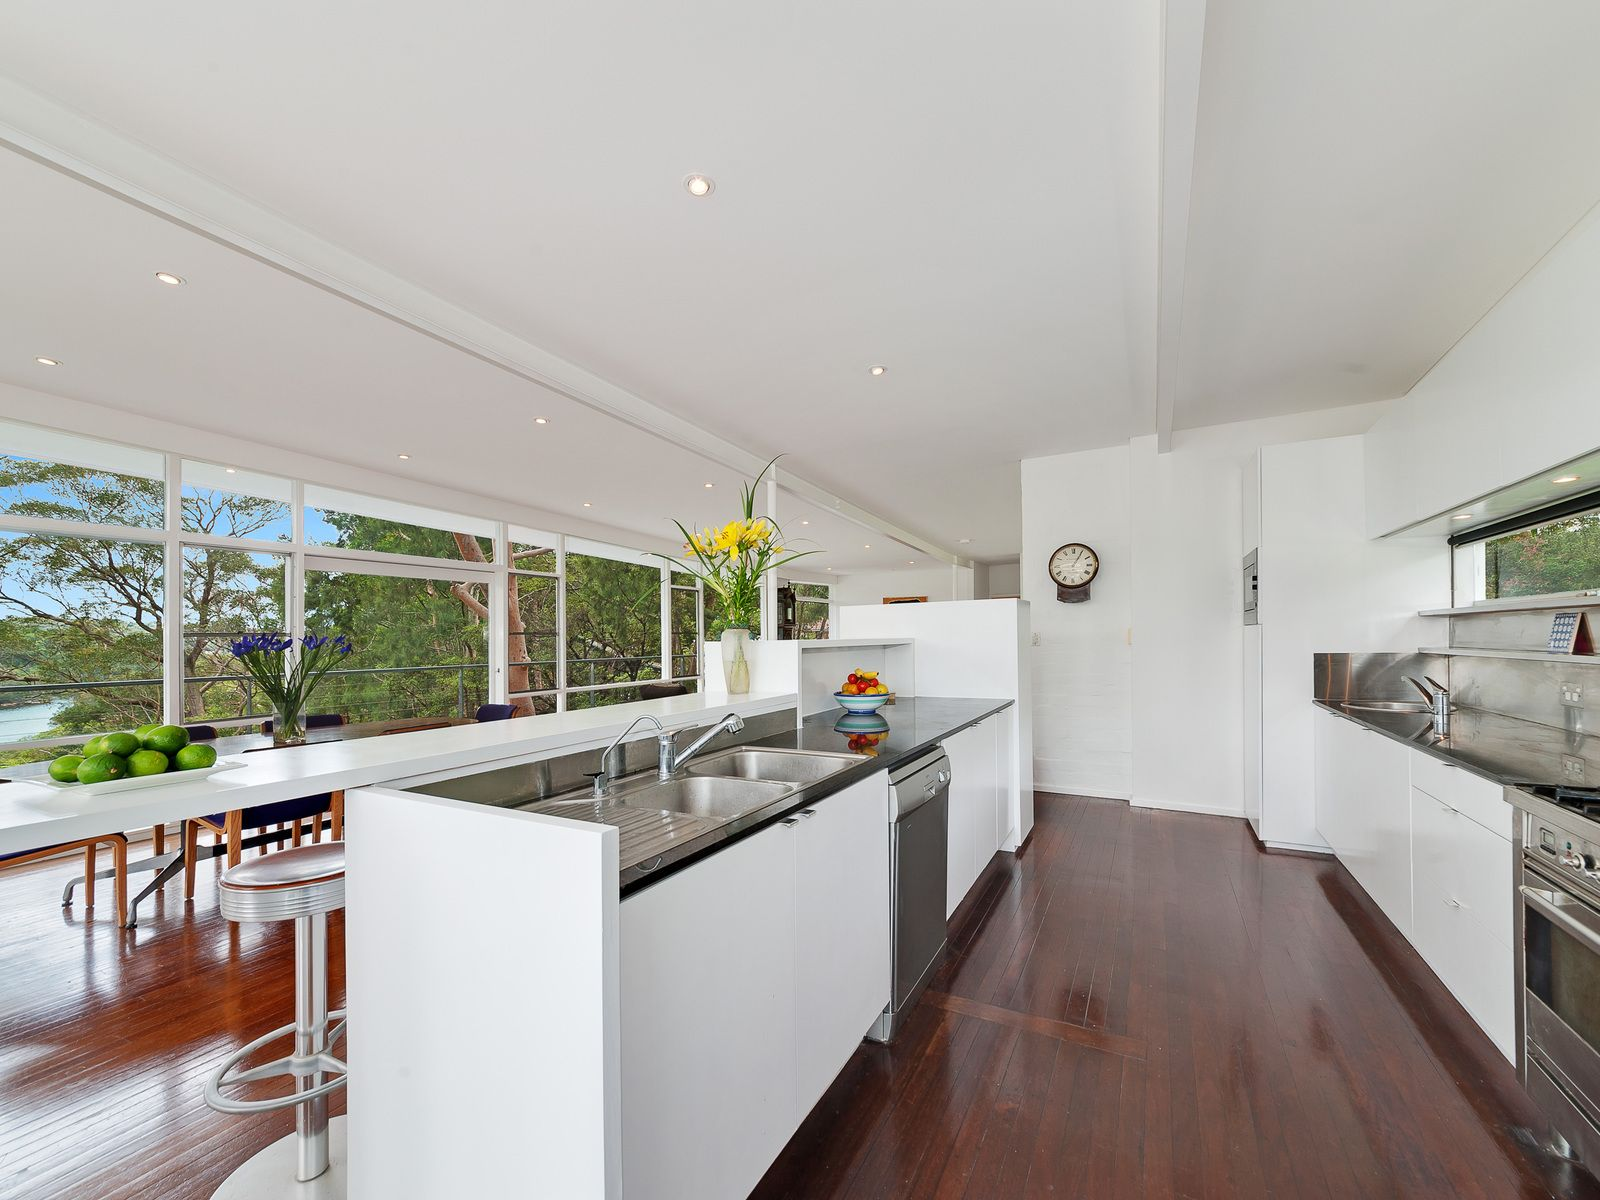 15 The Quarterdeck, Middle Cove NSW | Modernist Australia | Hopeful ...